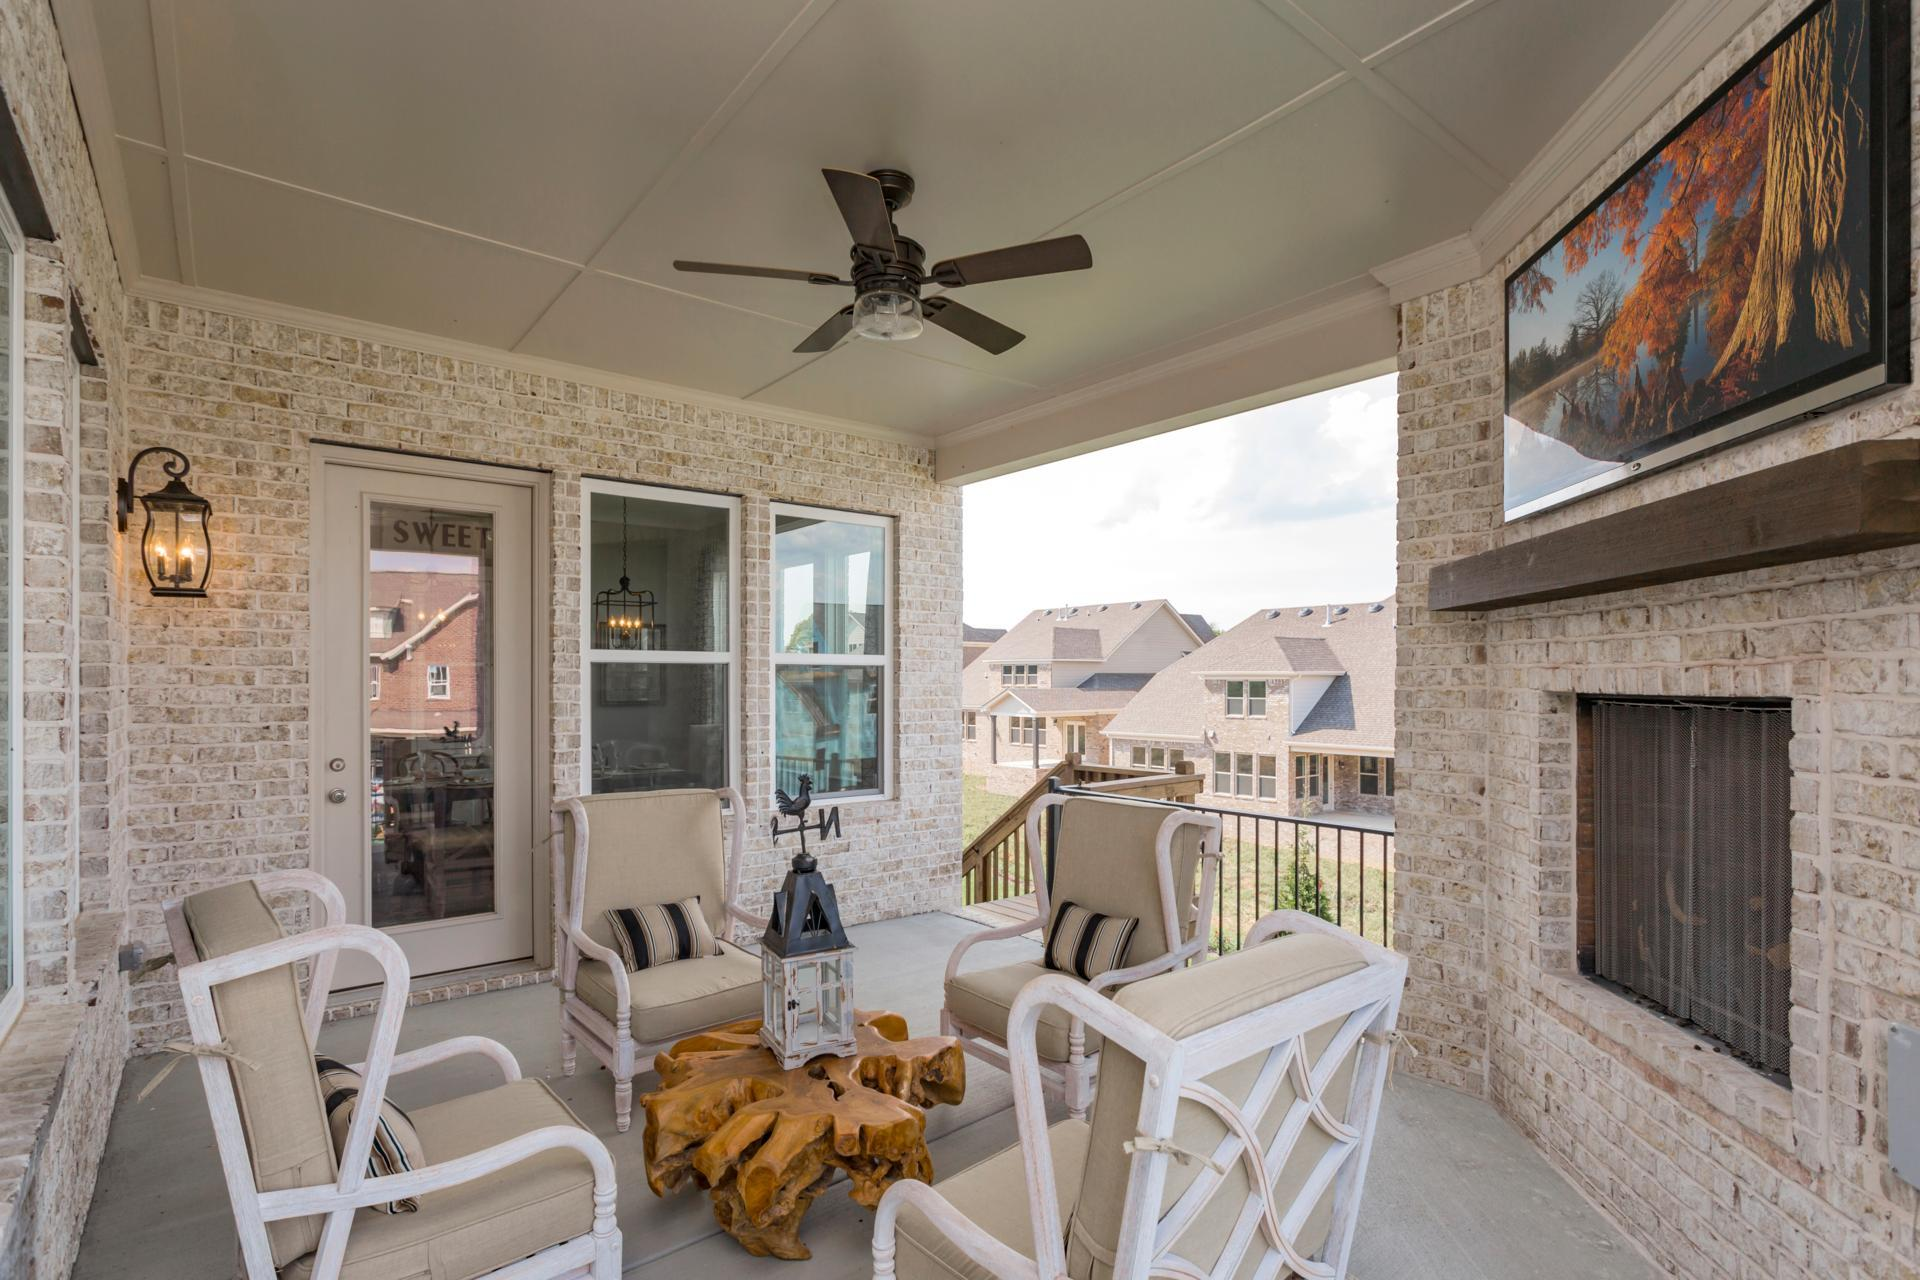 Single Family for Active at Somerville 988 Quinn Terrace Nolensville, Tennessee 37135 United States